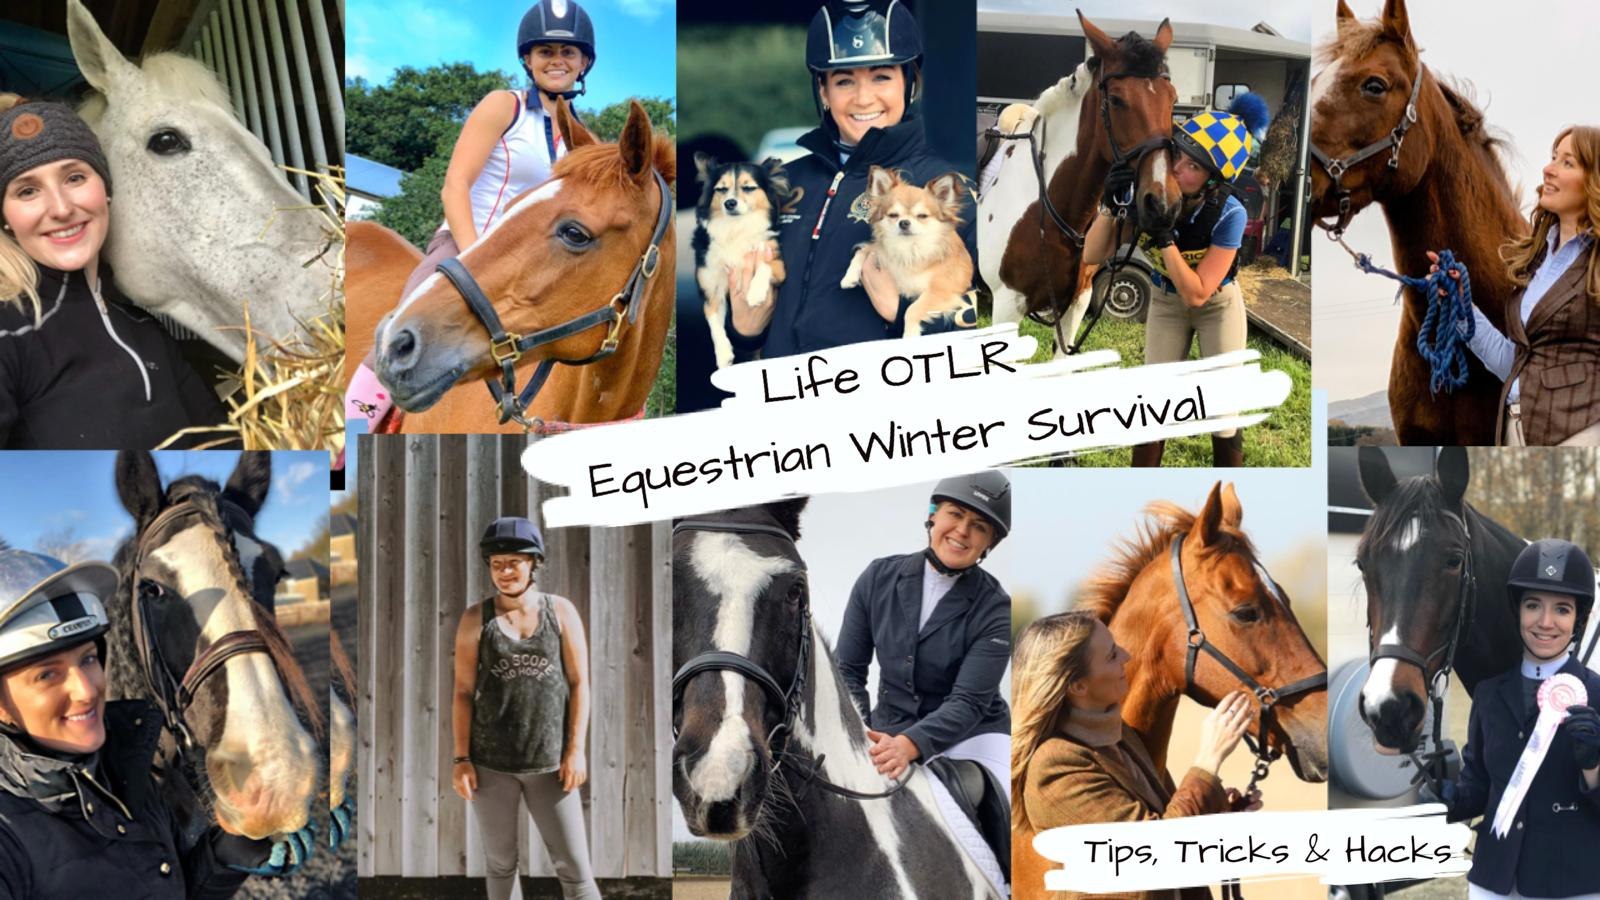 EQUESTRIAN WINTER SURVIVAL ~ Tips Tricks & Hacks